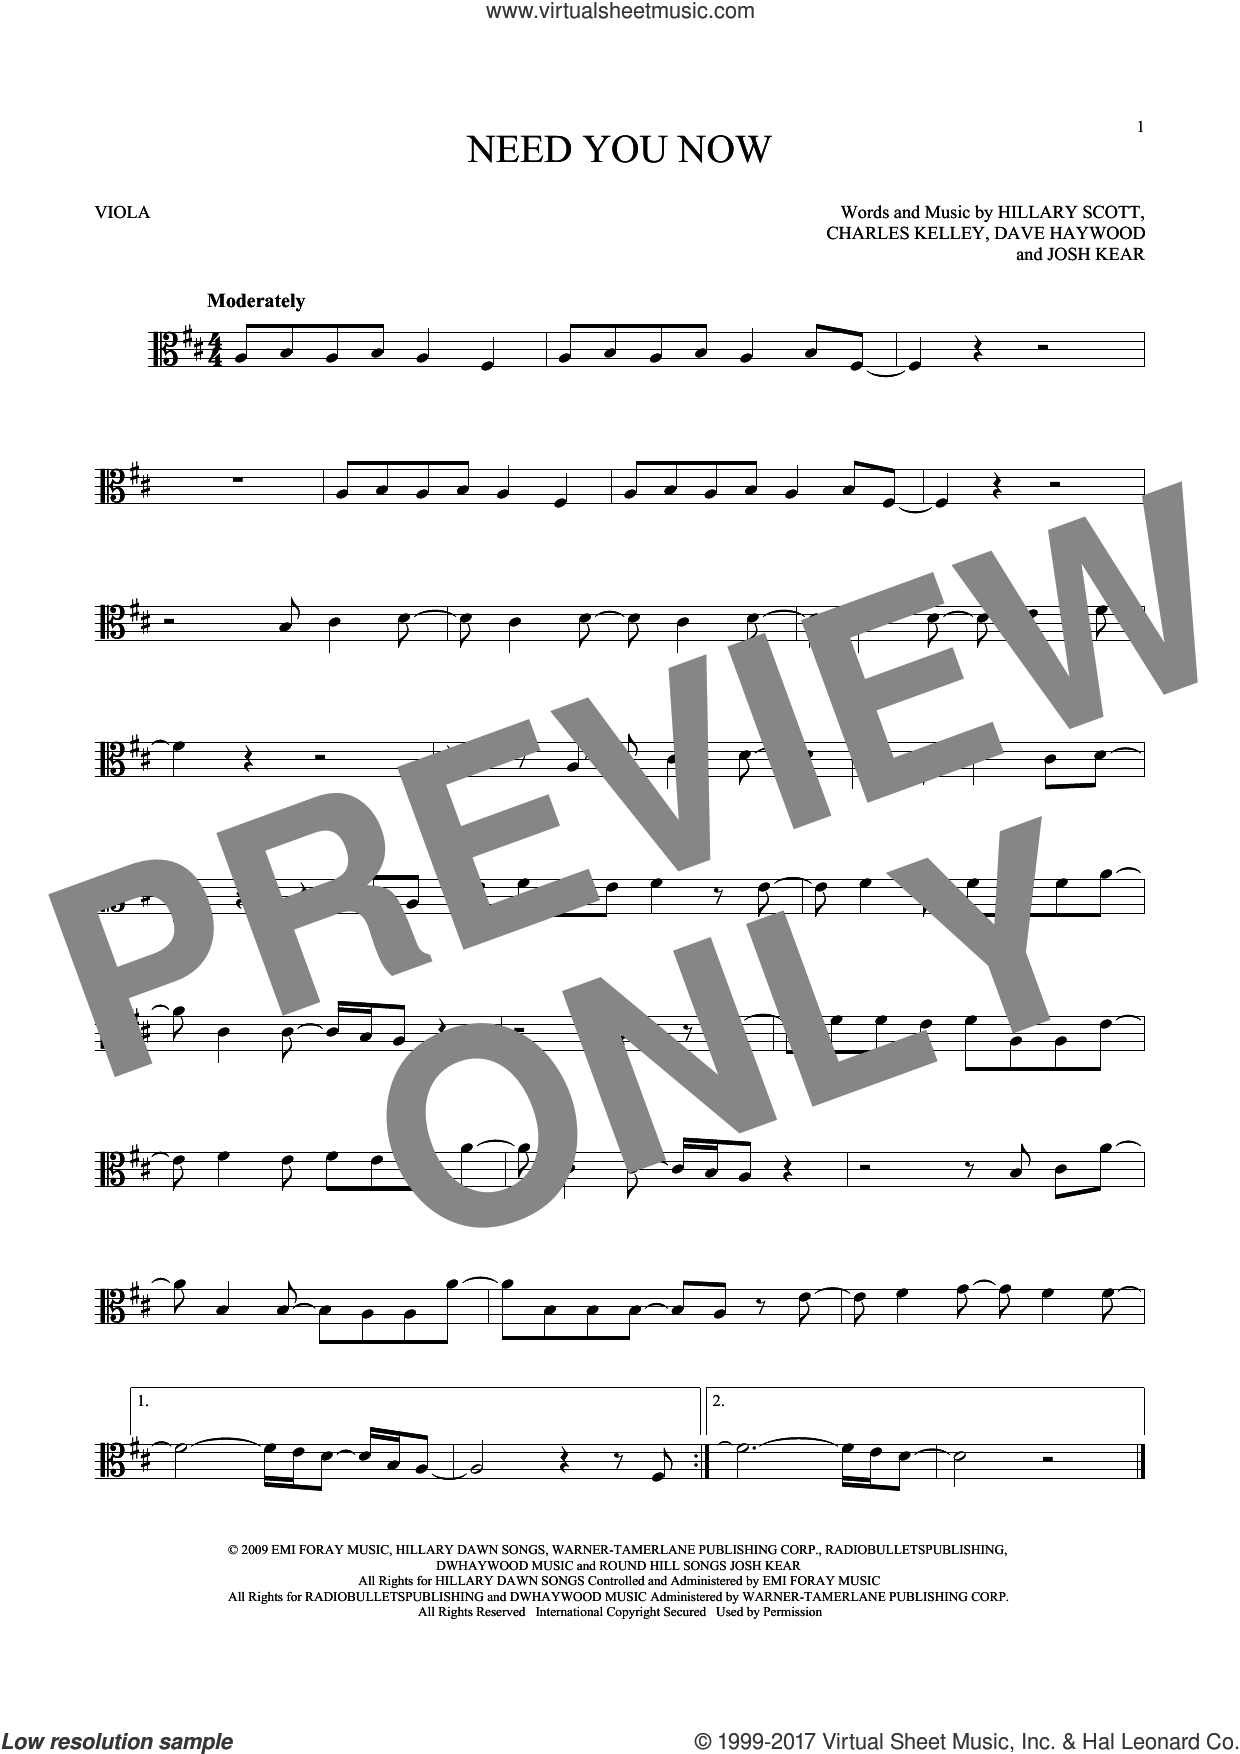 Need You Now sheet music for viola solo by Lady Antebellum, Charles Kelley, Dave Haywood, Hillary Scott and Josh Kear, intermediate skill level